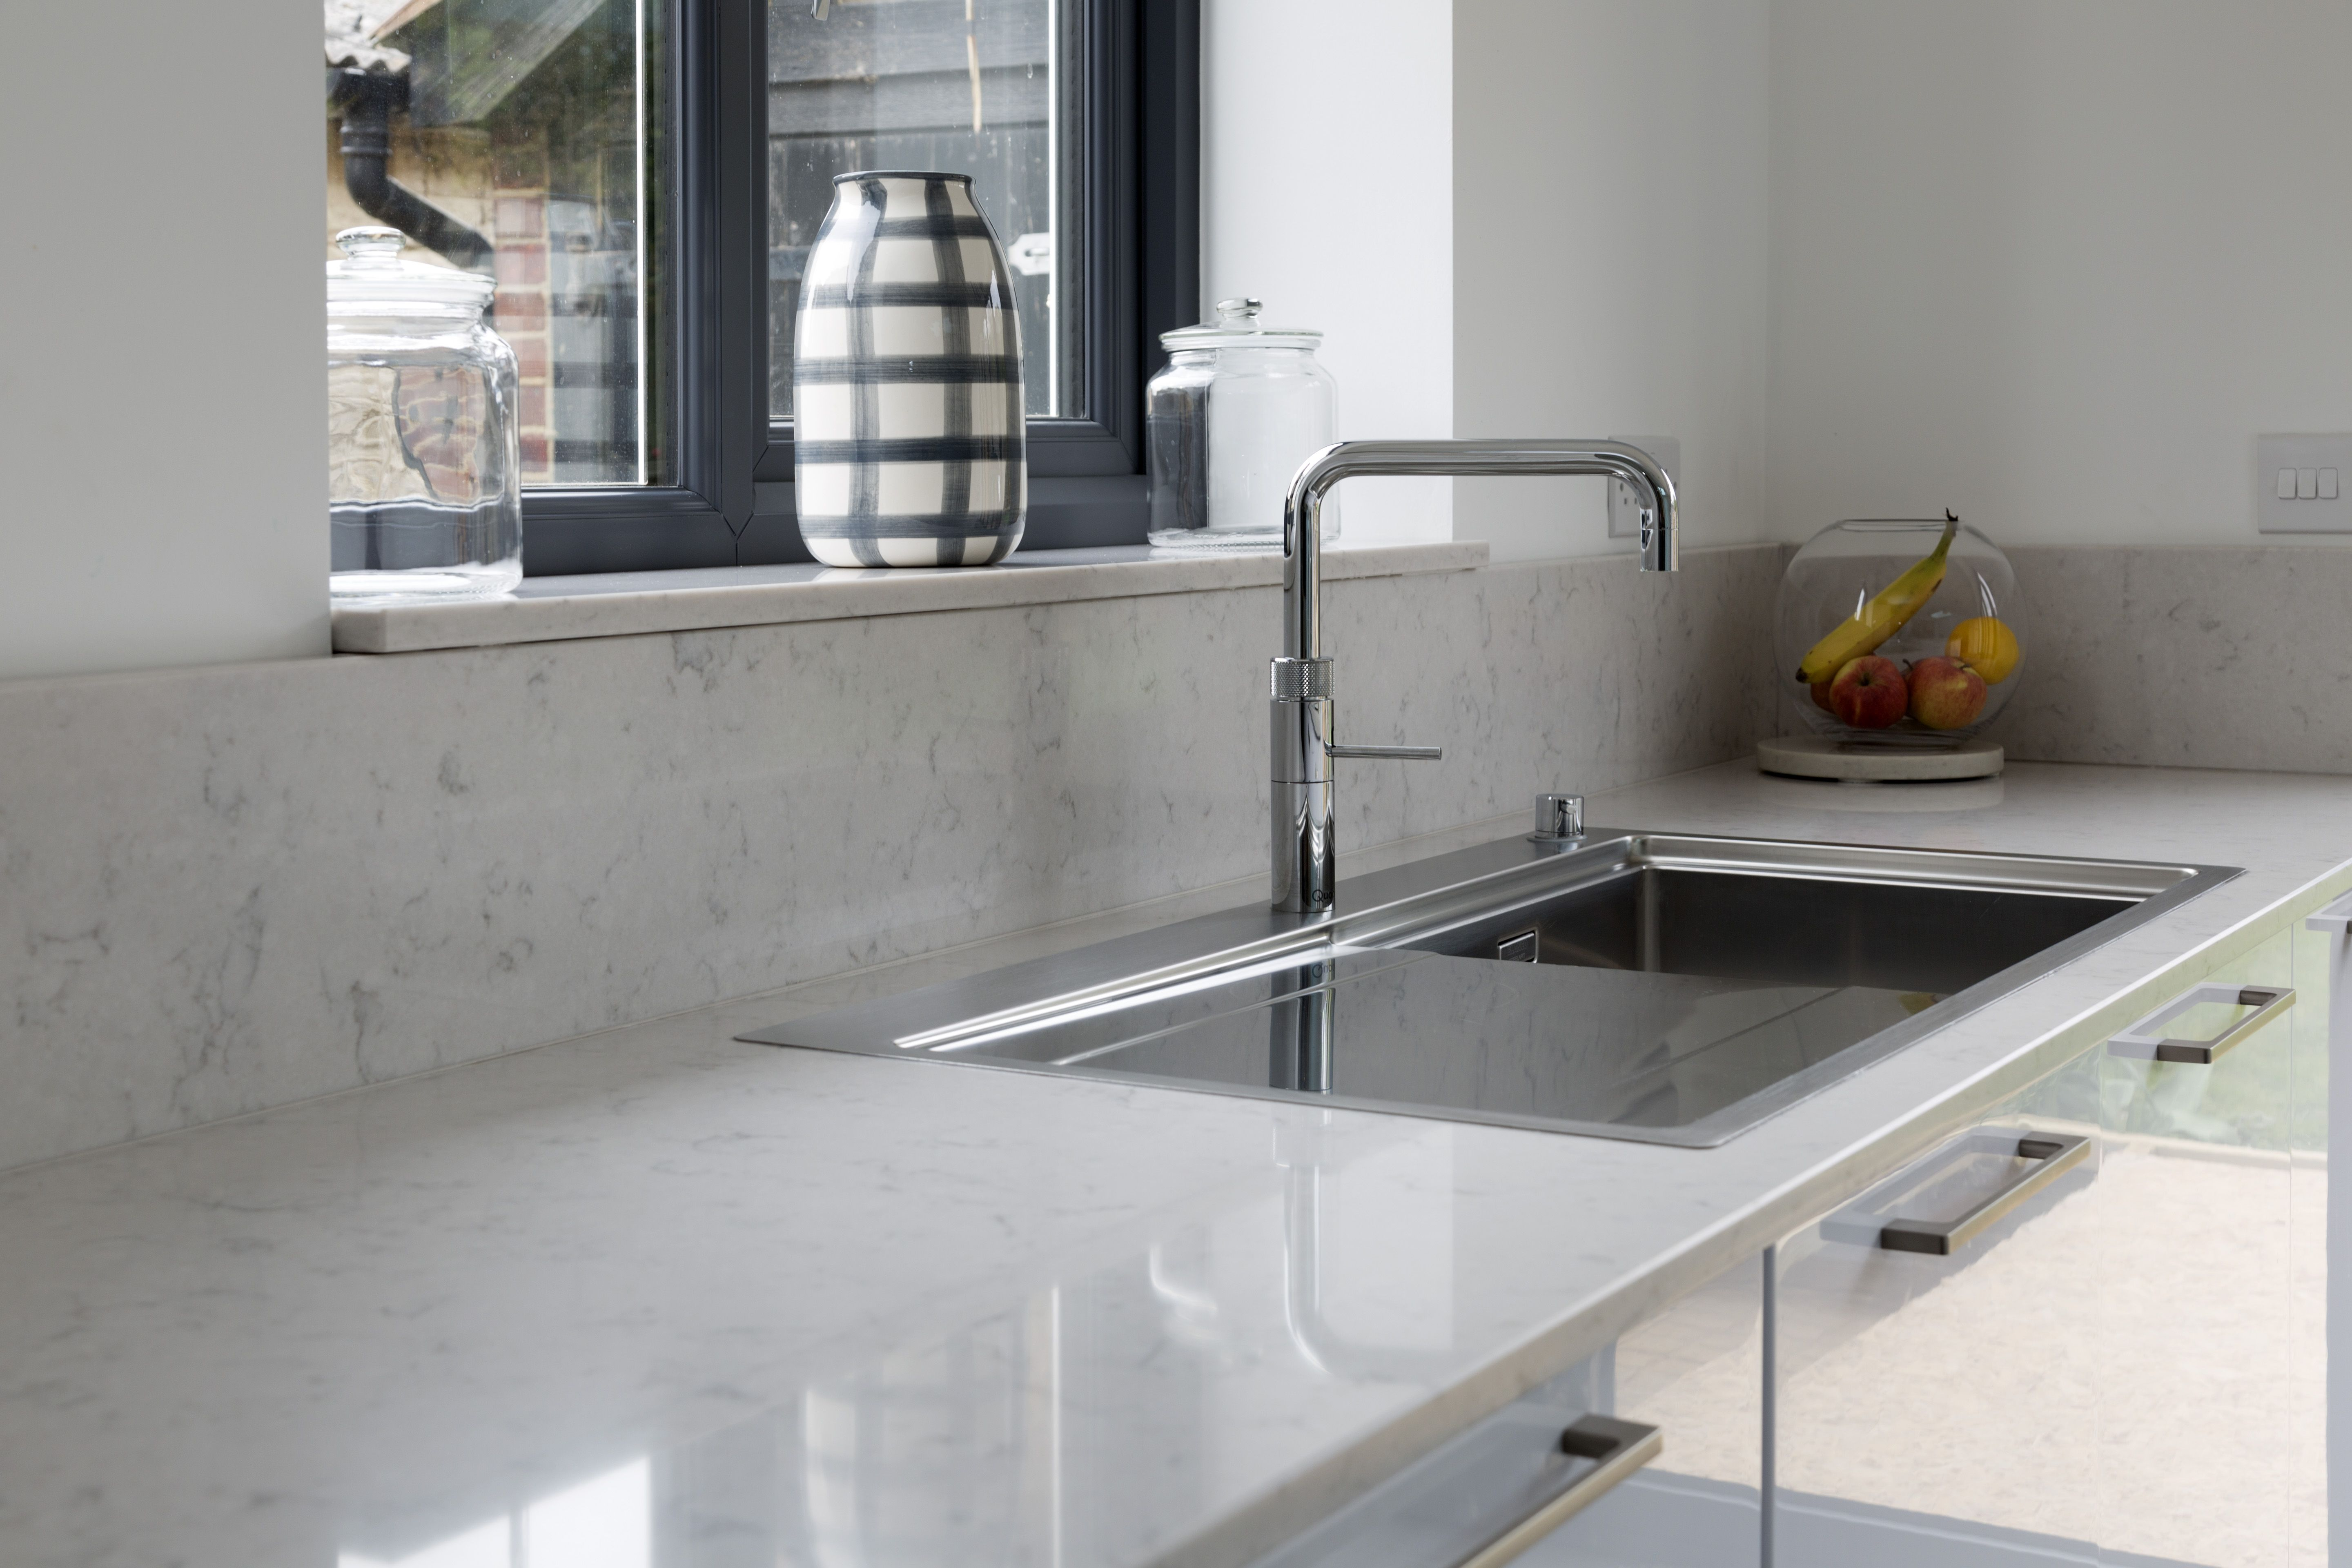 fascnatng slestone lagoon for modern your ktchen.htm 20mm silestone lagoon has been installed in this modern airy  20mm silestone lagoon has been